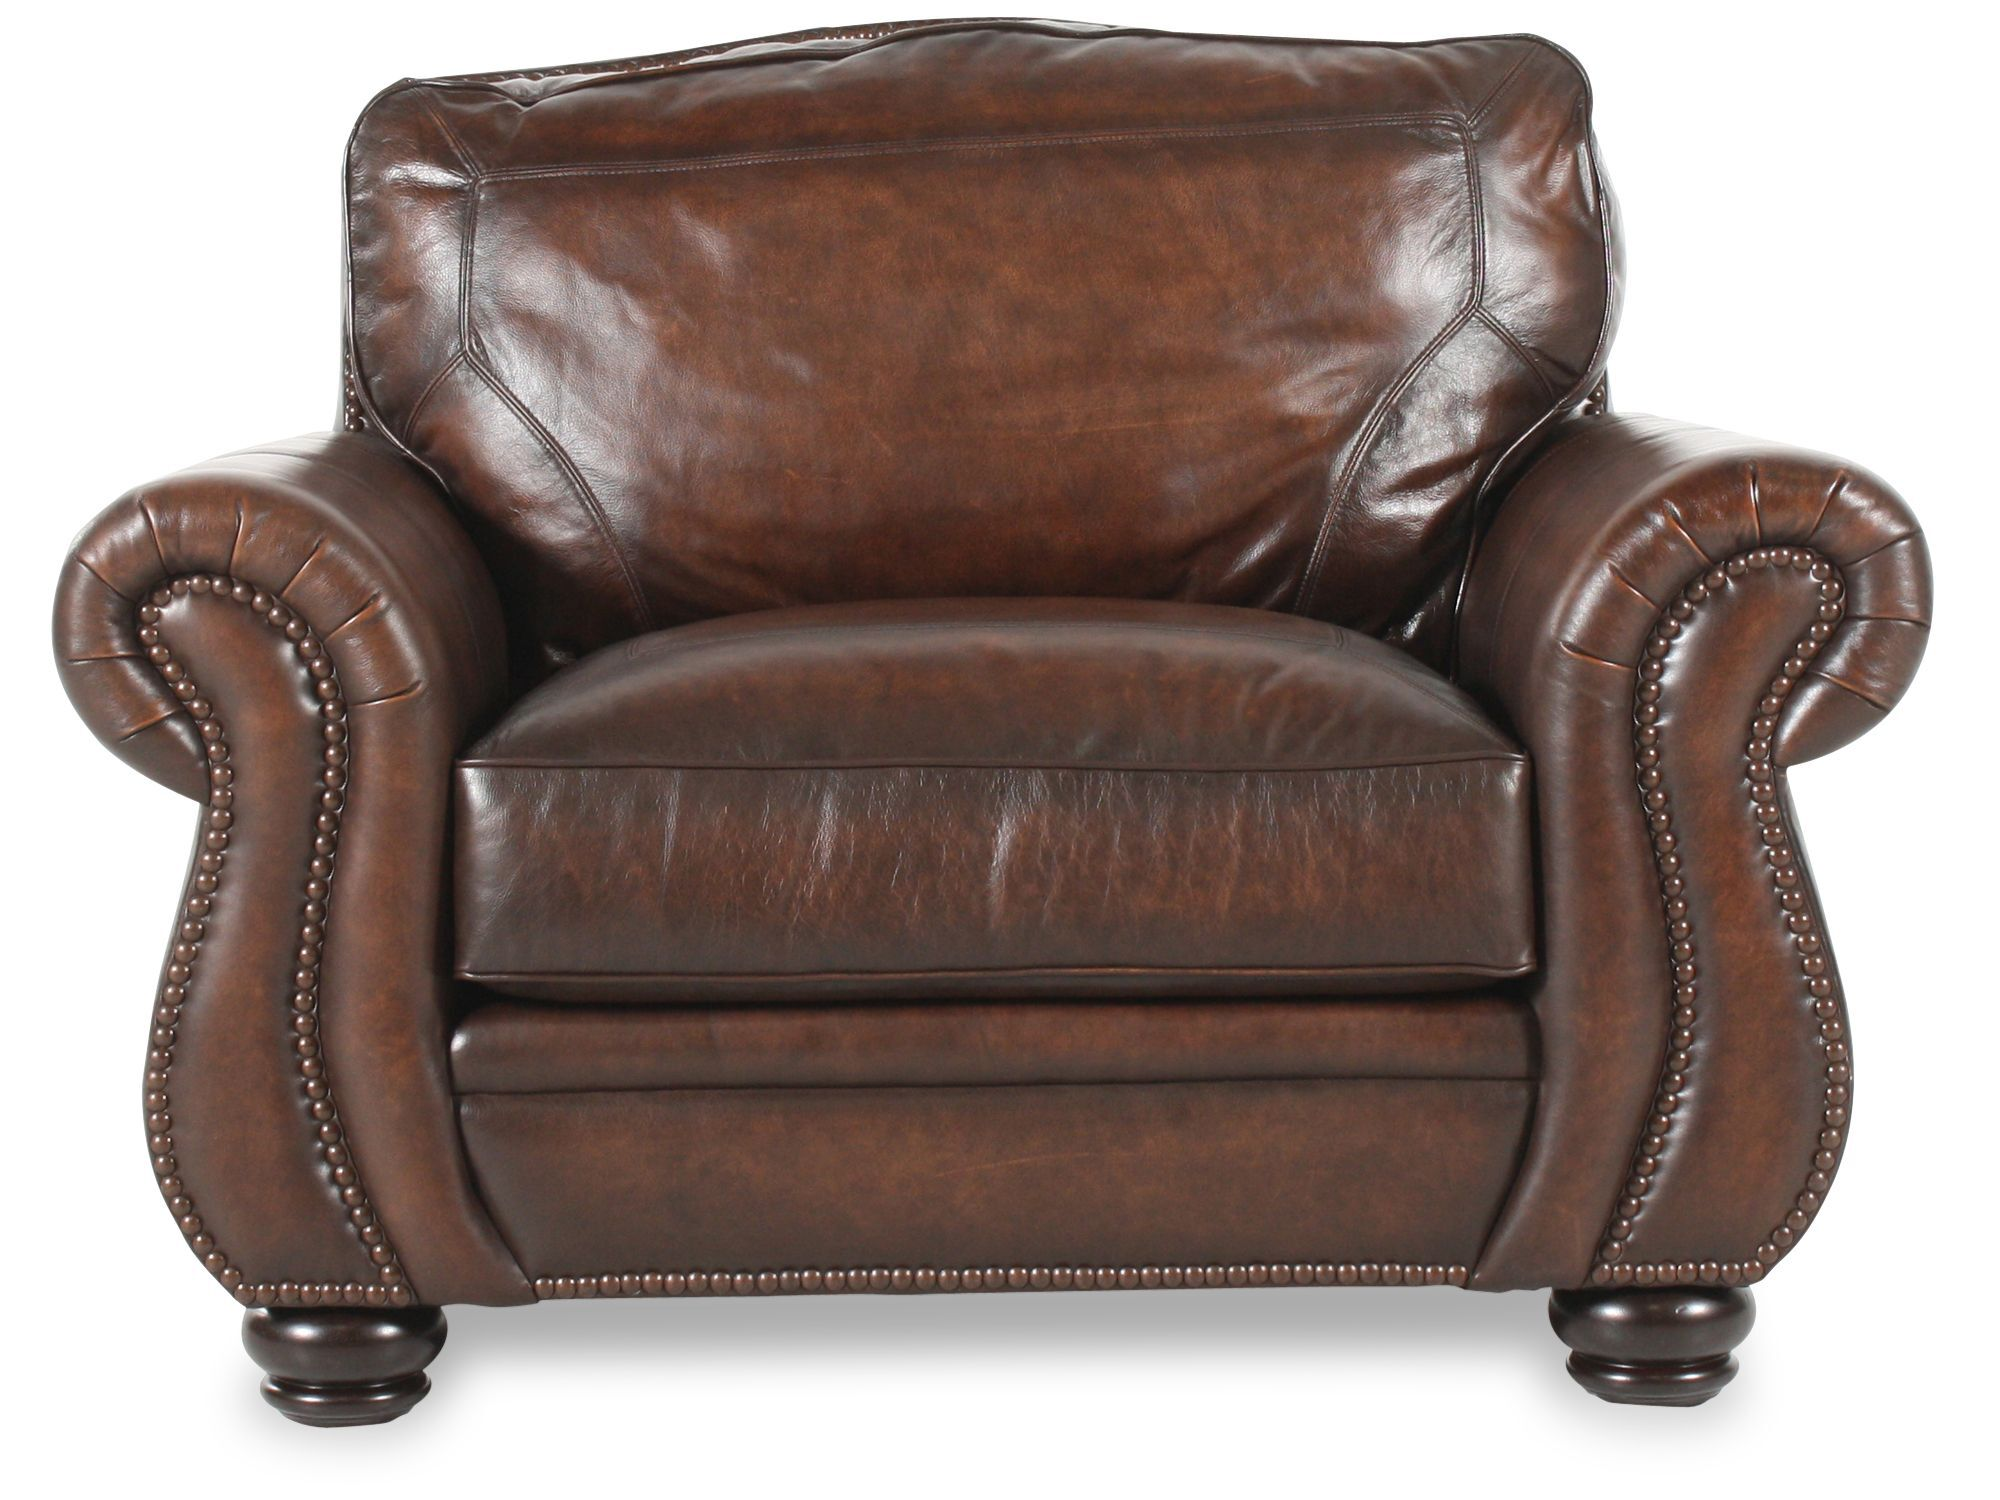 Bernhardt Leather Chair Bernhardt Breckenridge Leather Chair Mathis Brothers